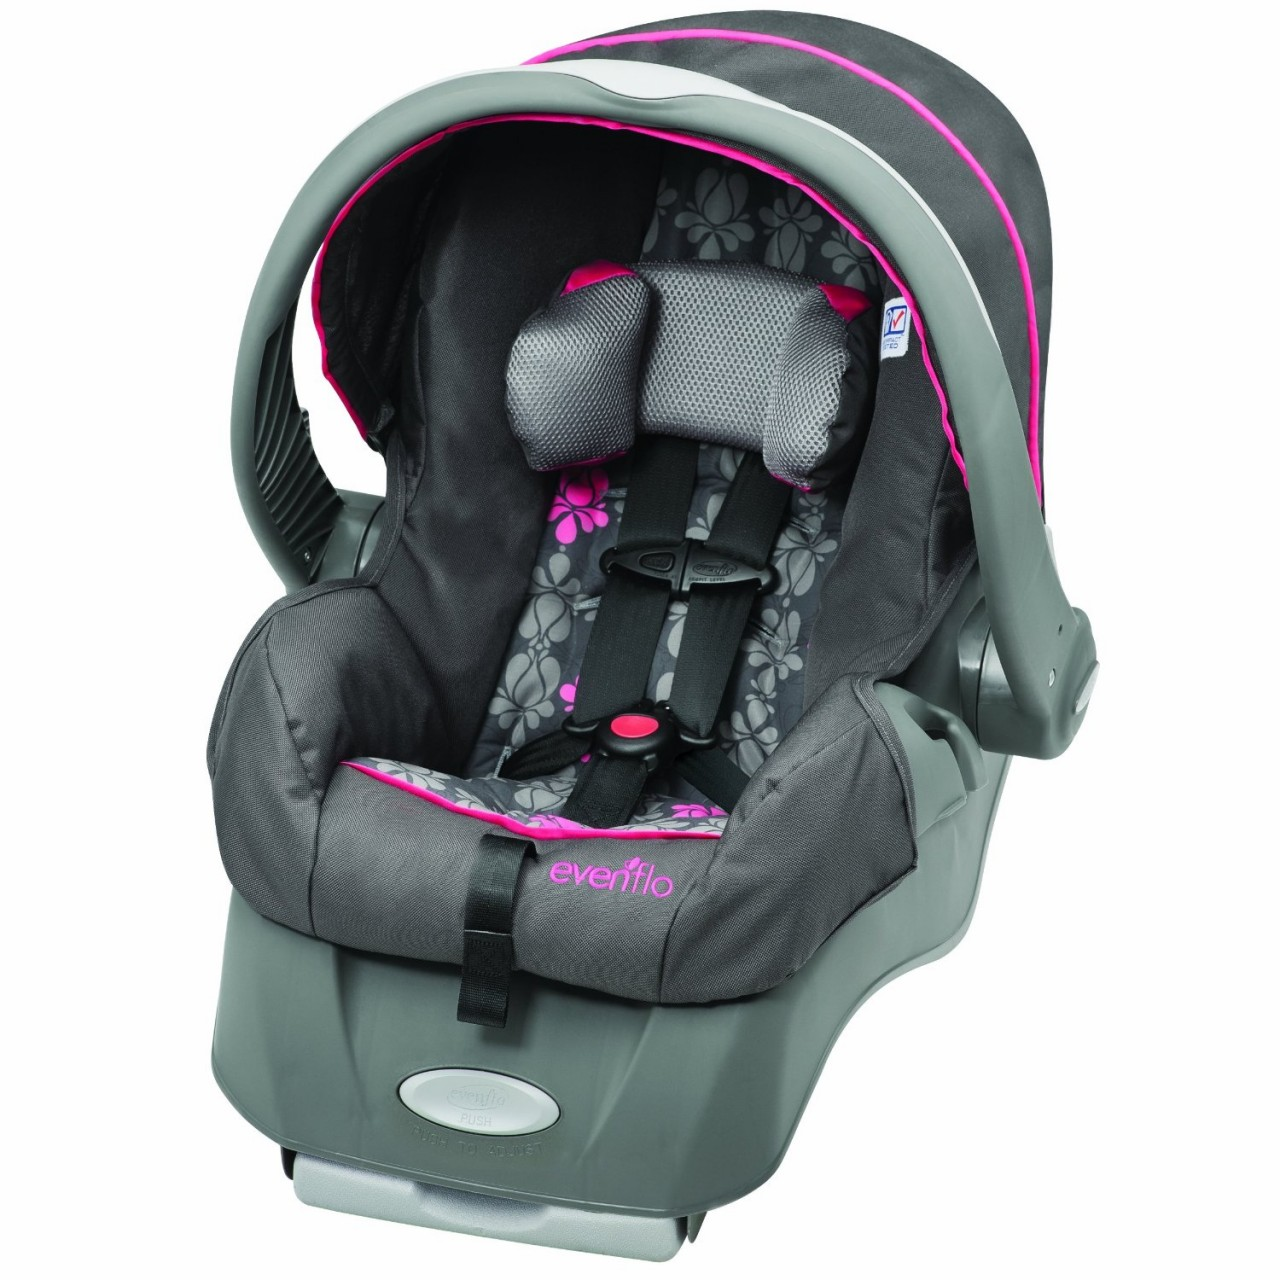 CarseatBlog: The Most Trusted Source For Car Seat Reviews